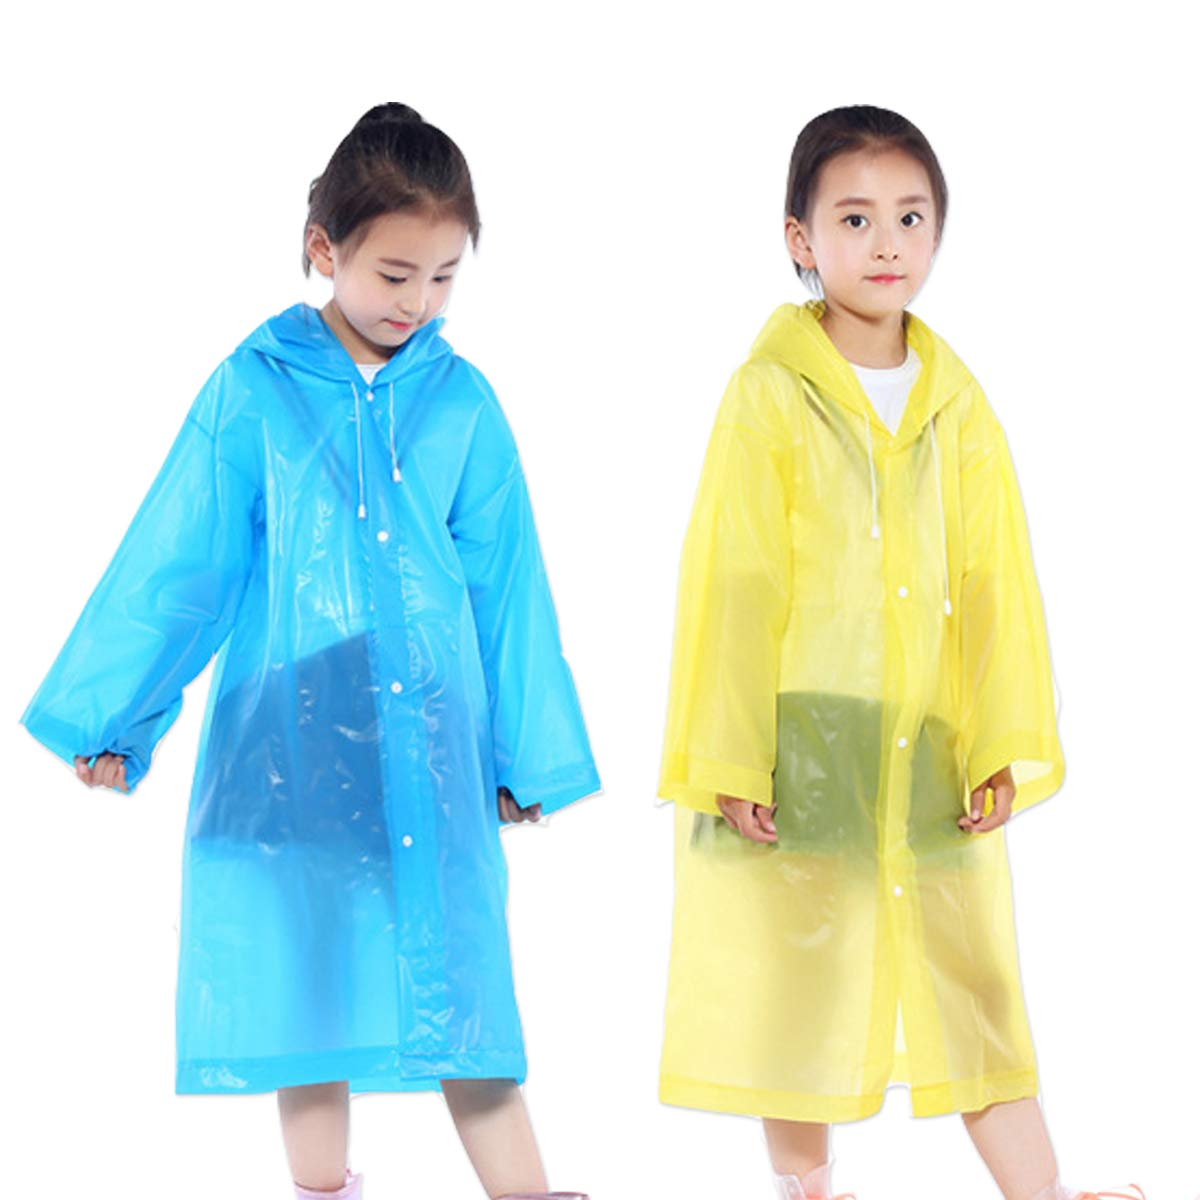 AzBoys Children Rain Ponchos 2Pack, Blue & Yellow, Waterproof Rain Poncho Kids, Portable Reusable Raincoat Boys Girls Ages 6-12 School, Camping, Emergency